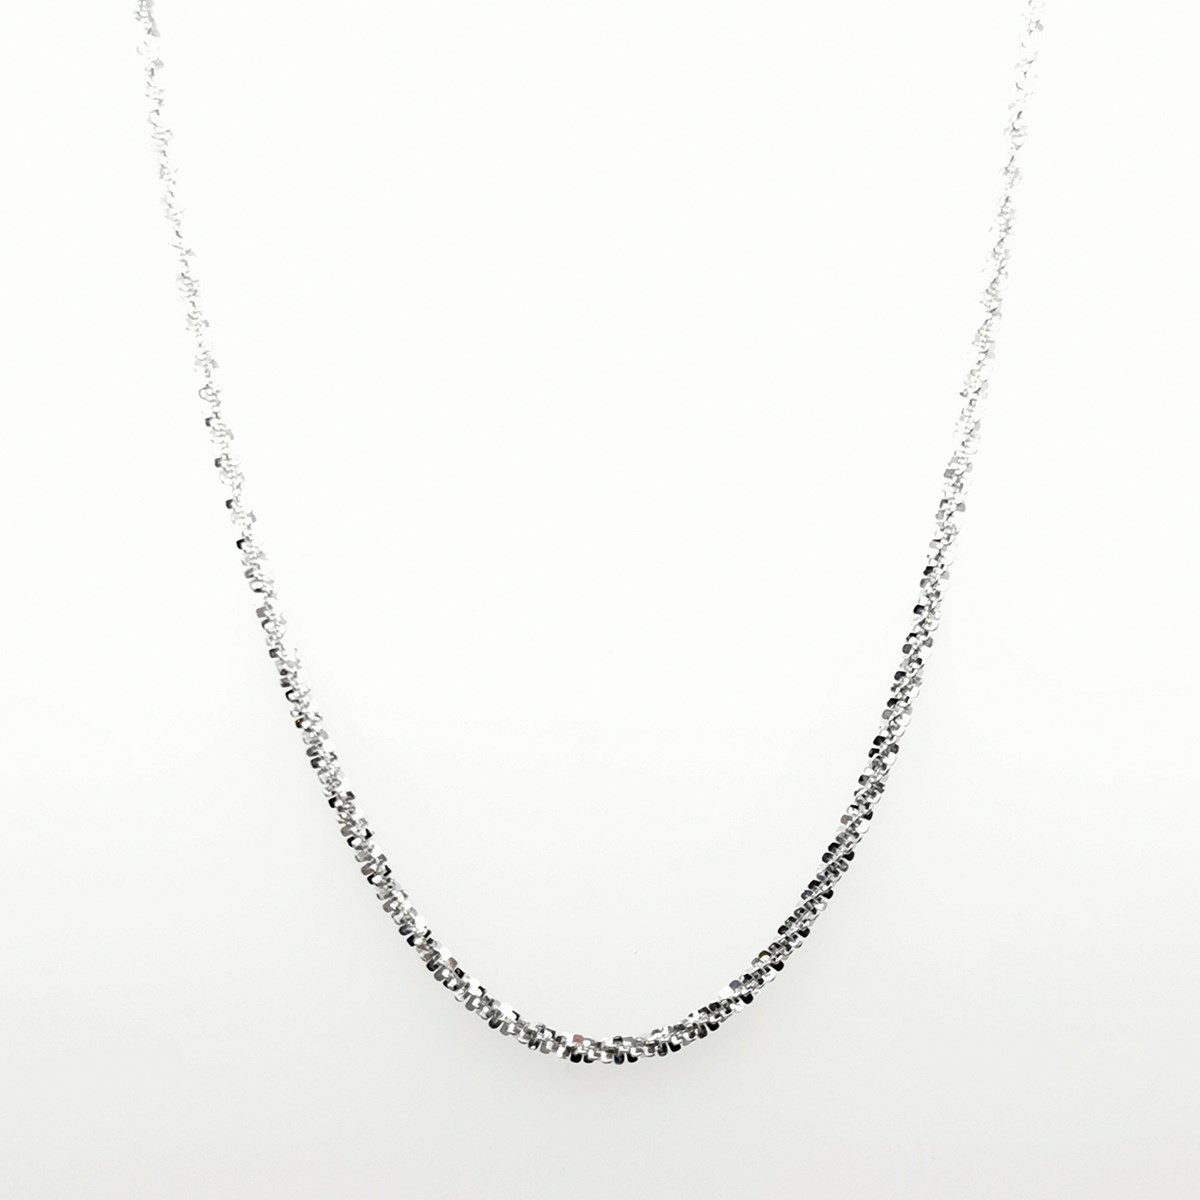 Collier Elden argent 925/1000 1 rang blanc collection Catch the Rainbow